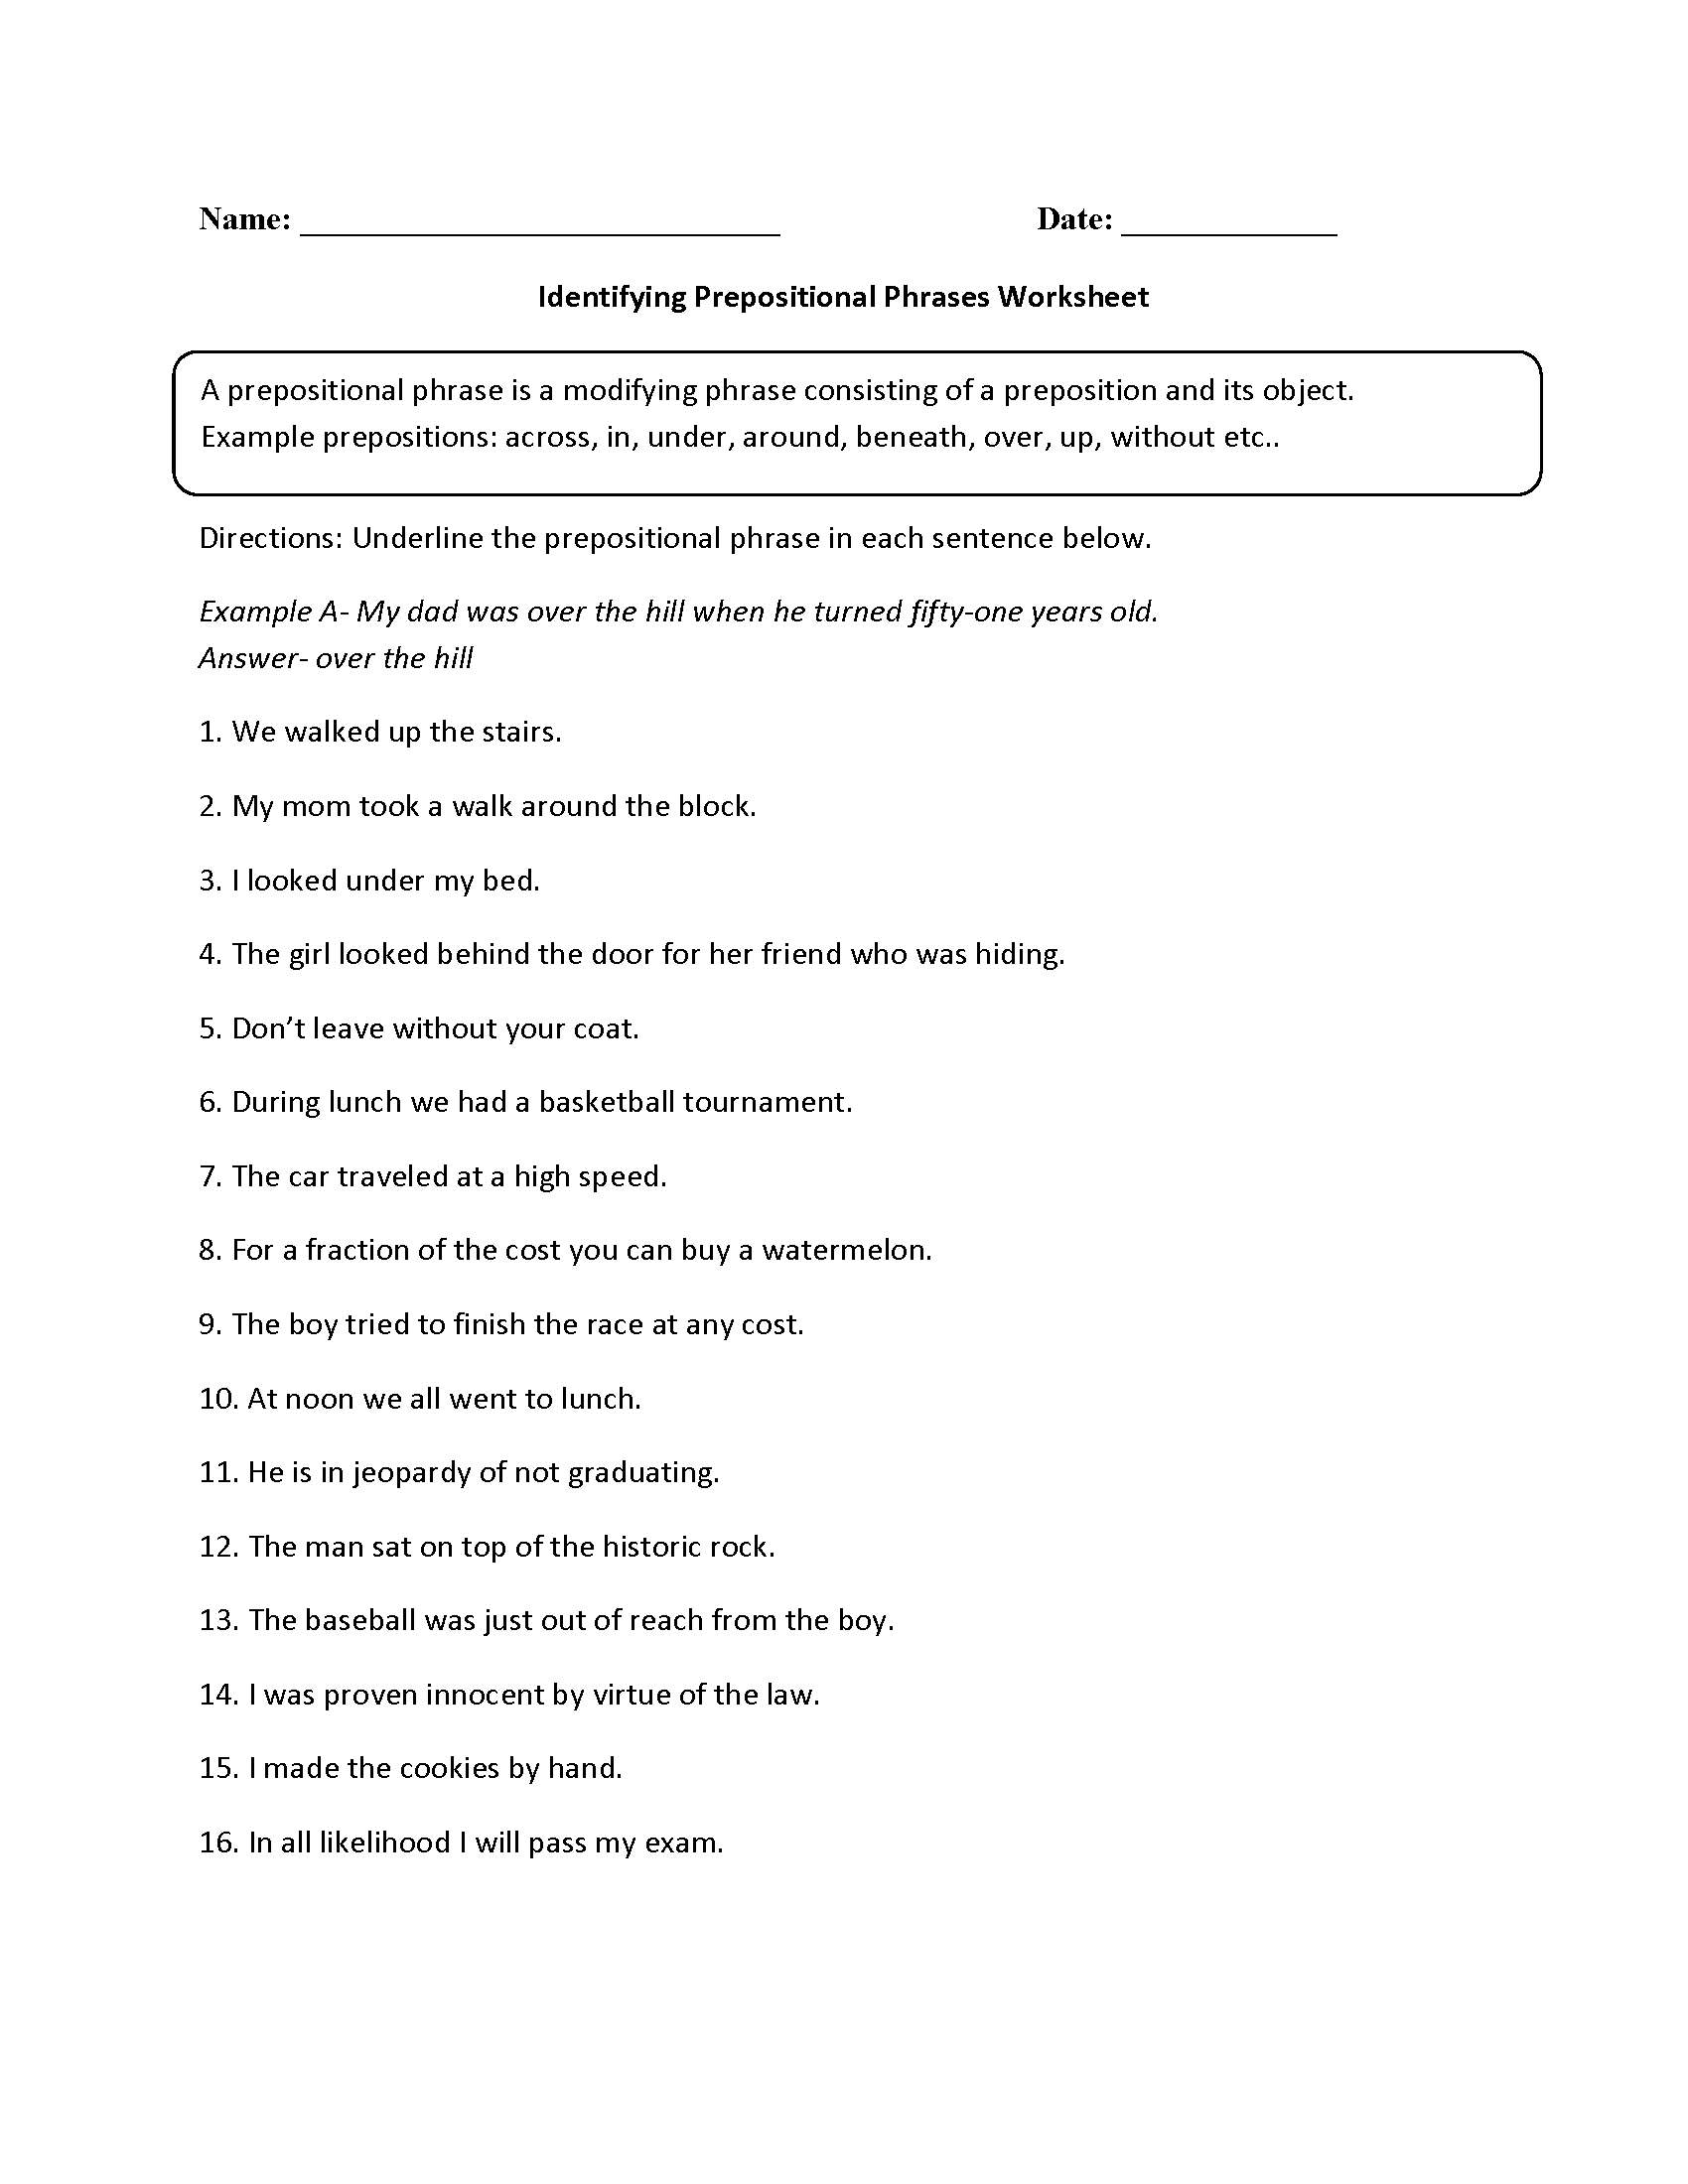 worksheet Transitional Words And Phrases Worksheet transitional words and phrases worksheet abitlikethis worksheets identifying prepositional worksheet